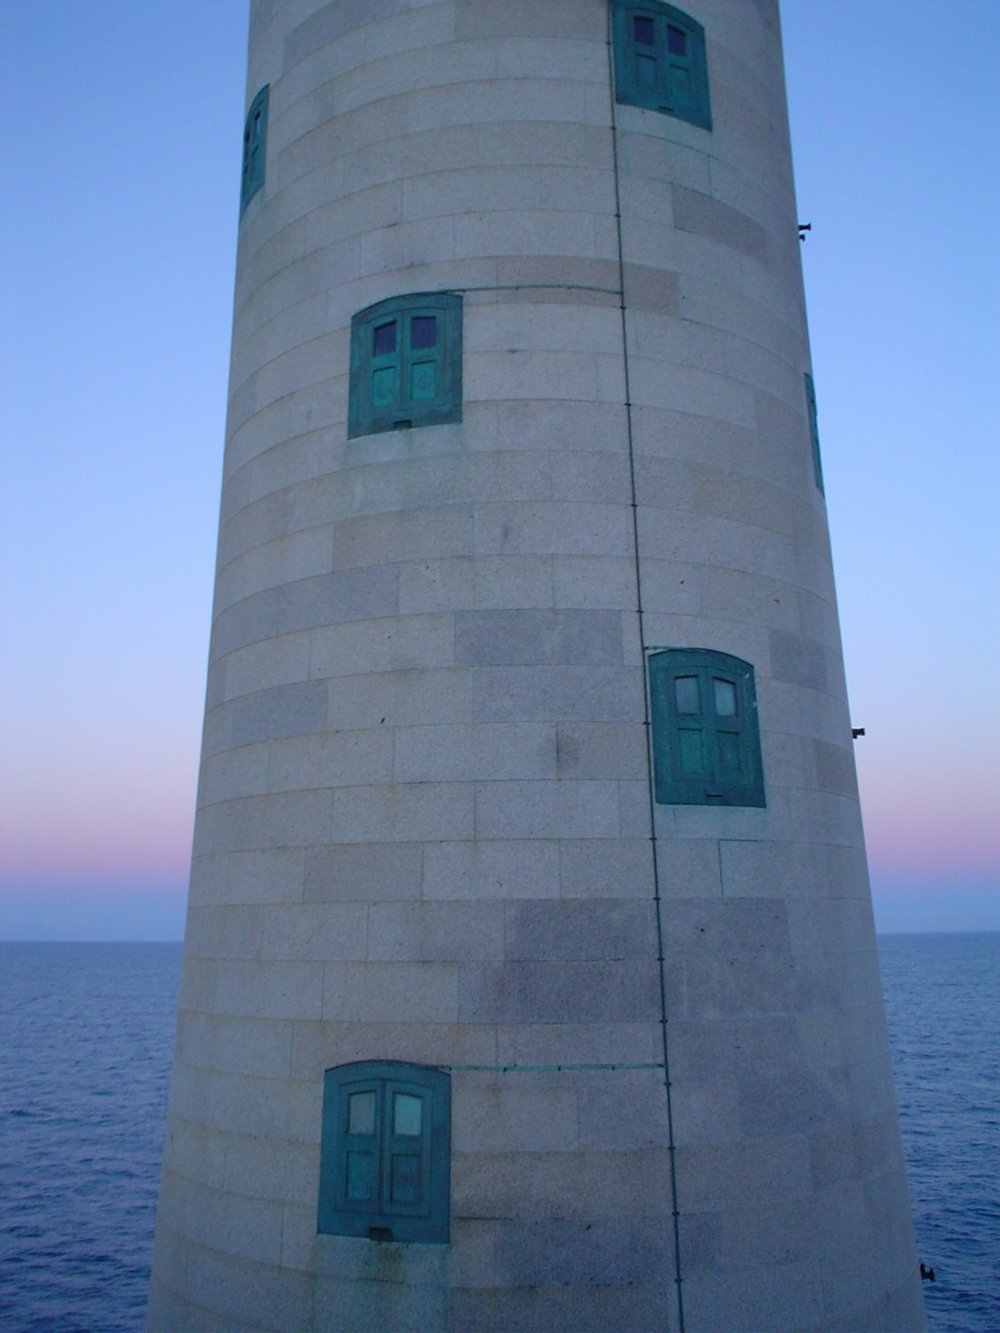 The Tower at dawn